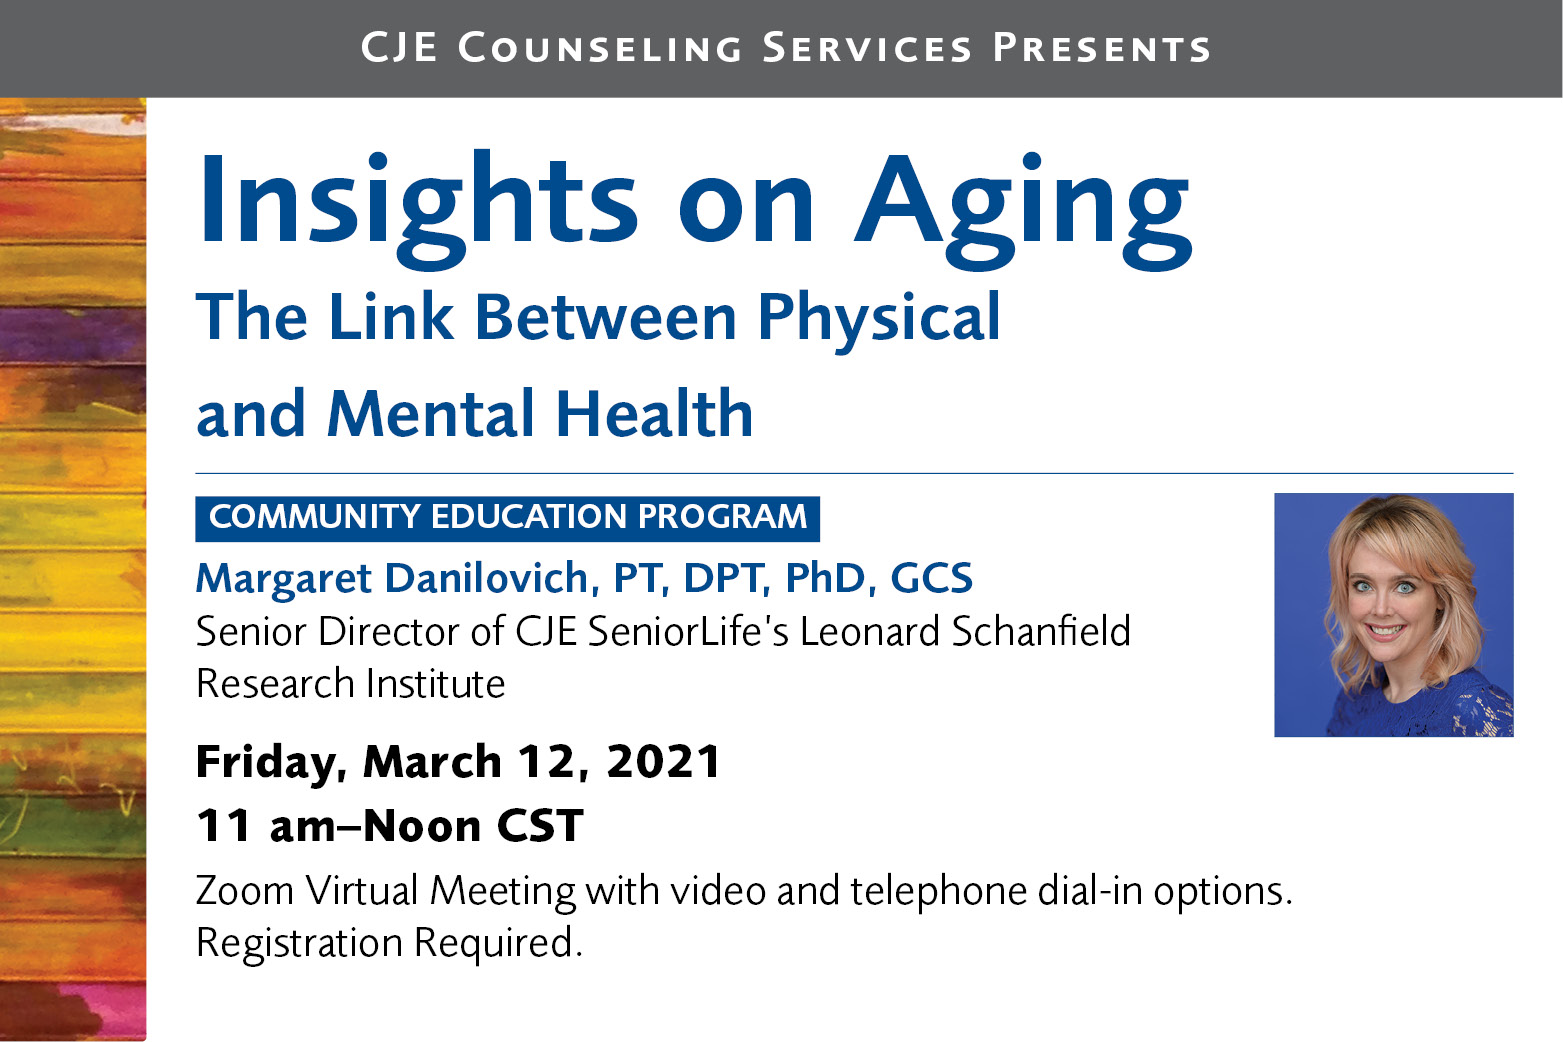 Insights on Aging The Link Between Physical and Mental Health